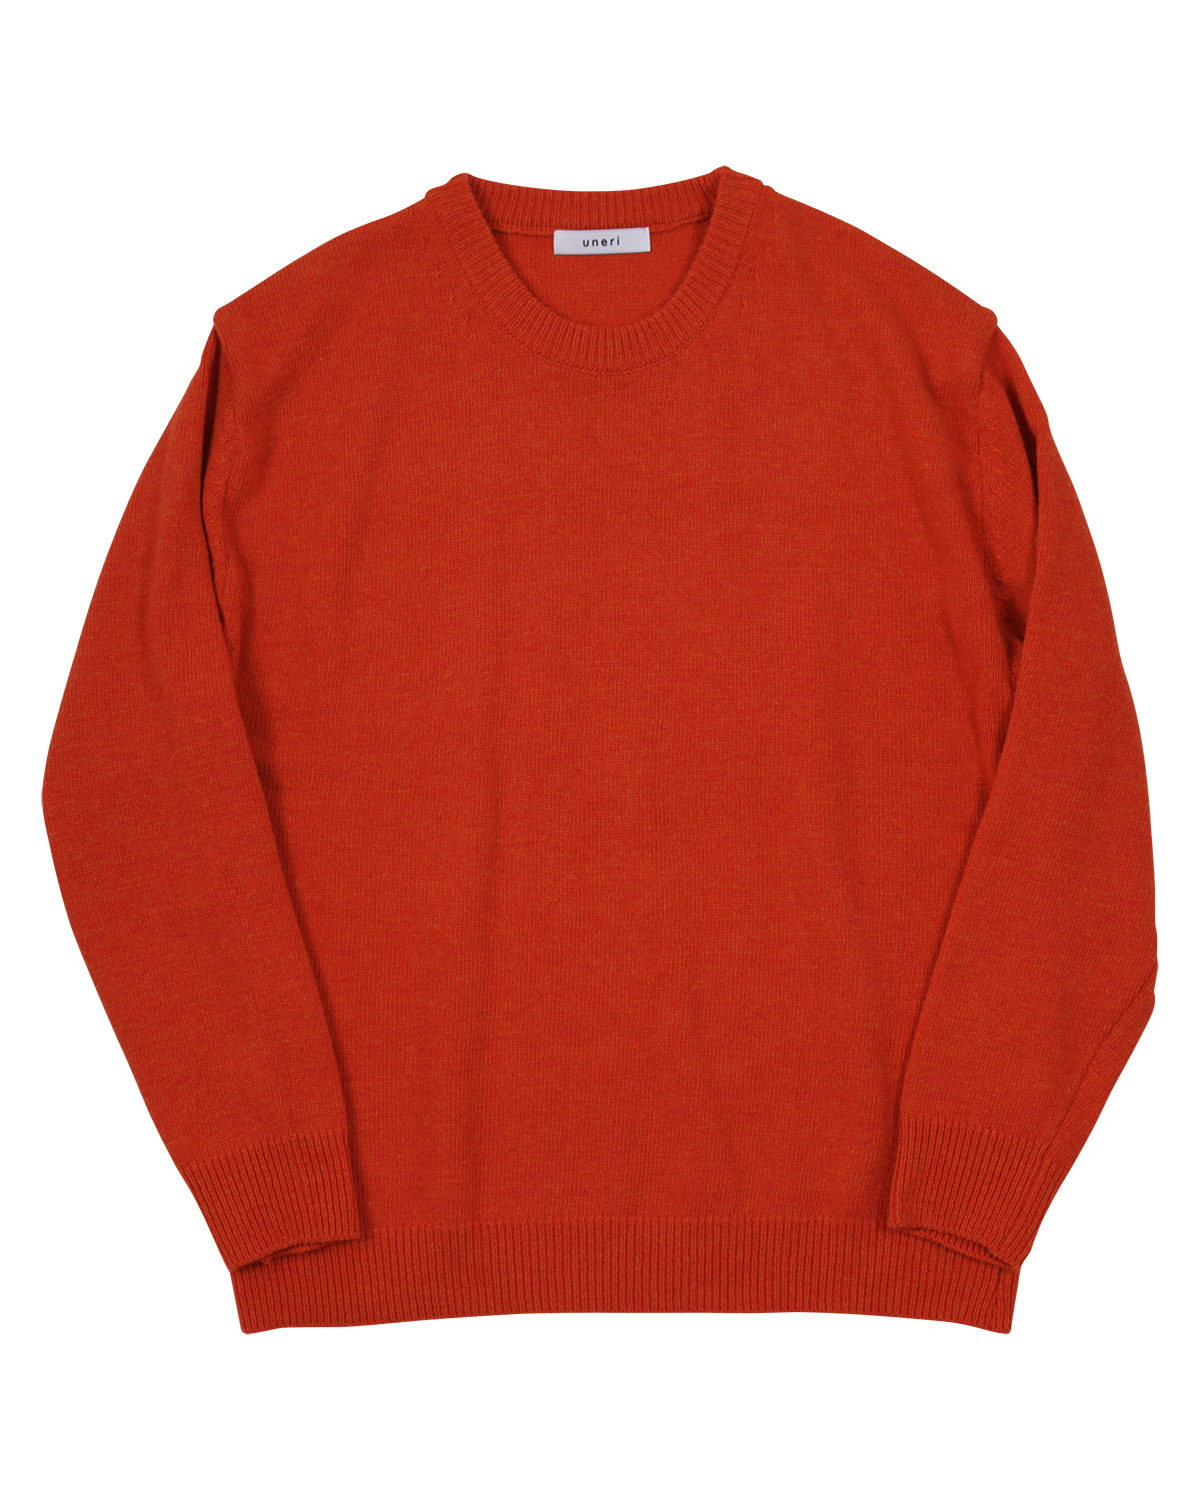 Relaxed Wool Knit _ orange